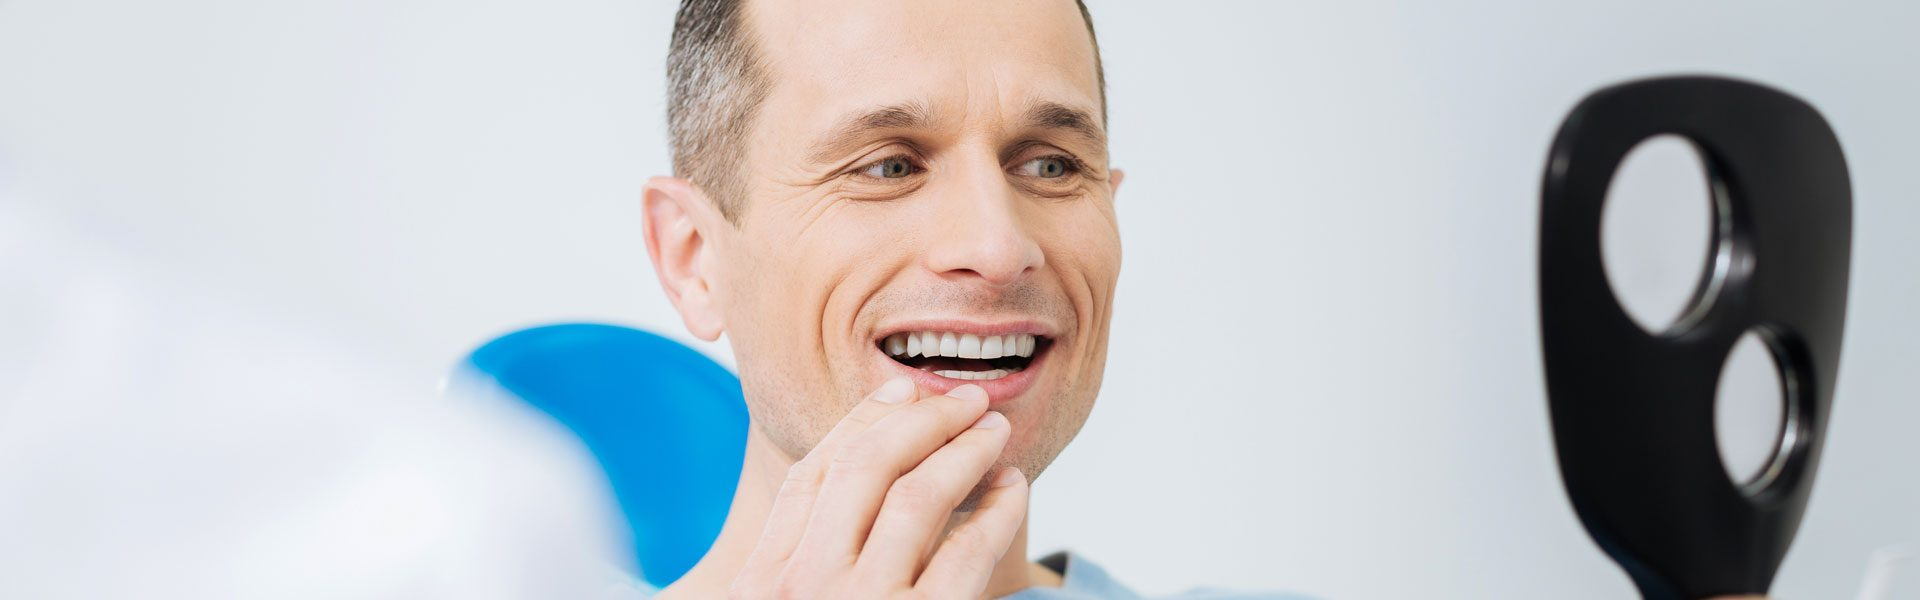 What To Expect After Dental Bone Graft Surgery